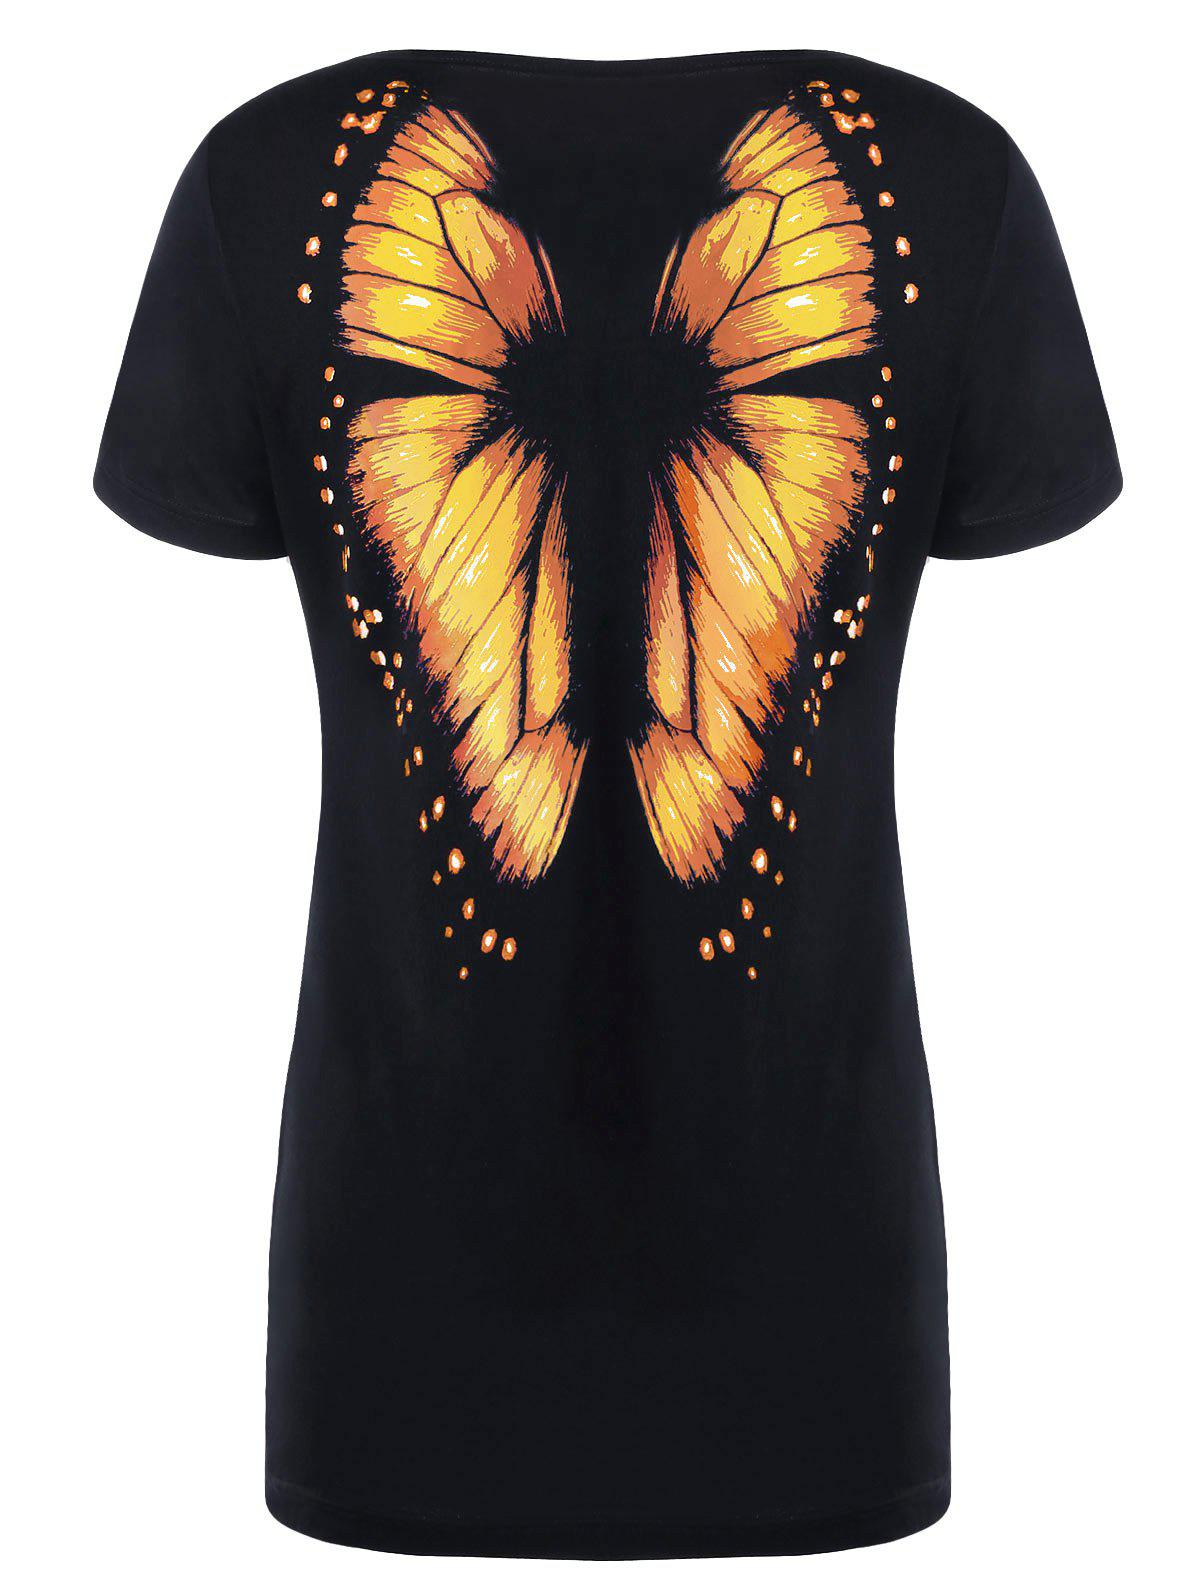 Butterfly Print Short Sleeve Tee - ORANGE 2XL